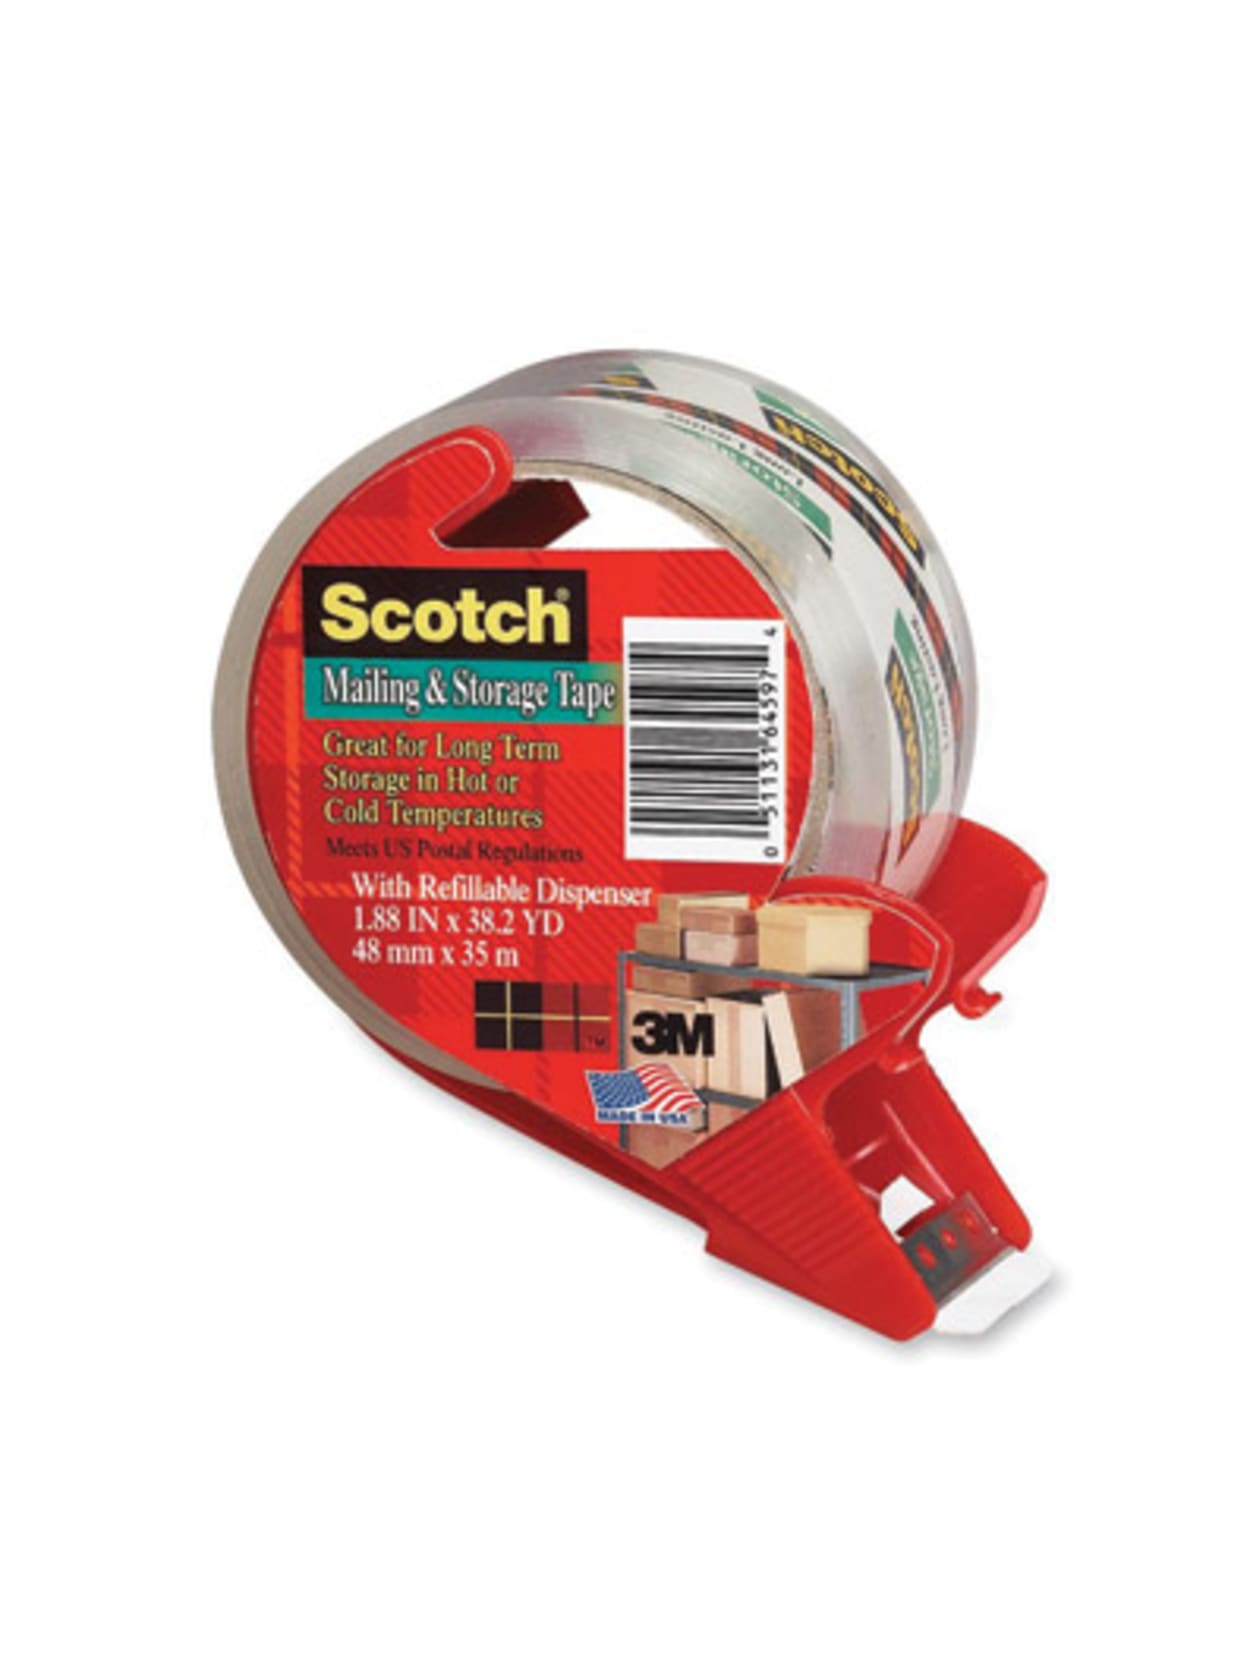 Scotch Moving /& Storage Packaging Tape with Dispenser 2 Pack 1.88 in x 38 Yard